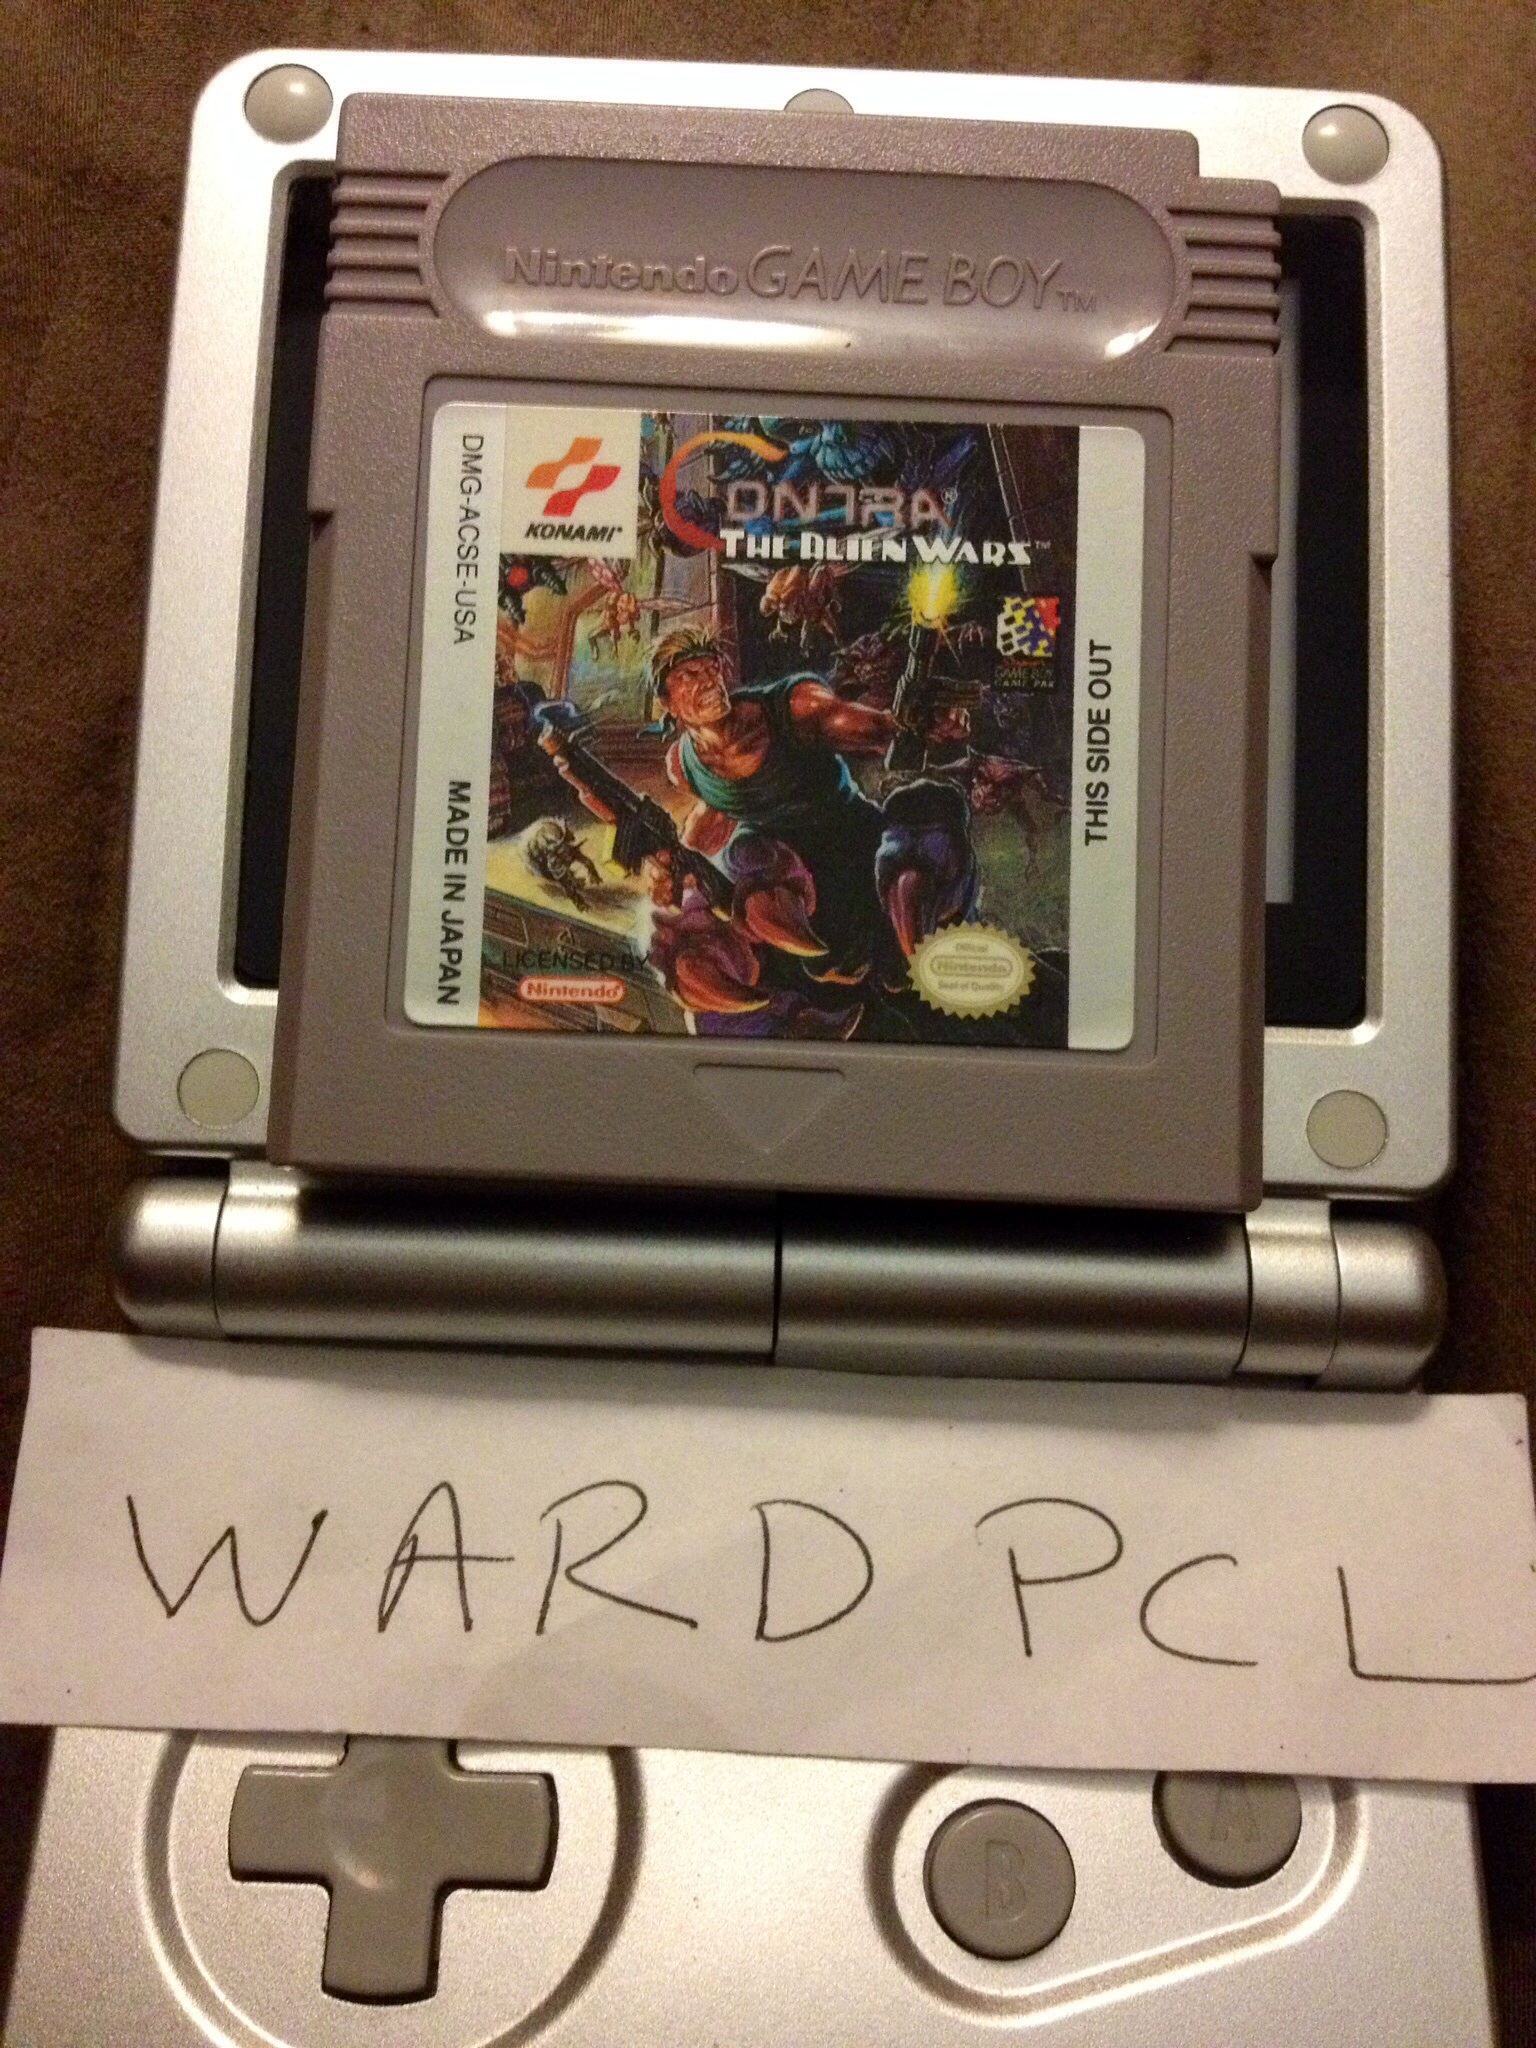 Wardpcl: Contra: The Alien Wars (Game Boy) 42,630 points on 2015-09-10 19:51:52